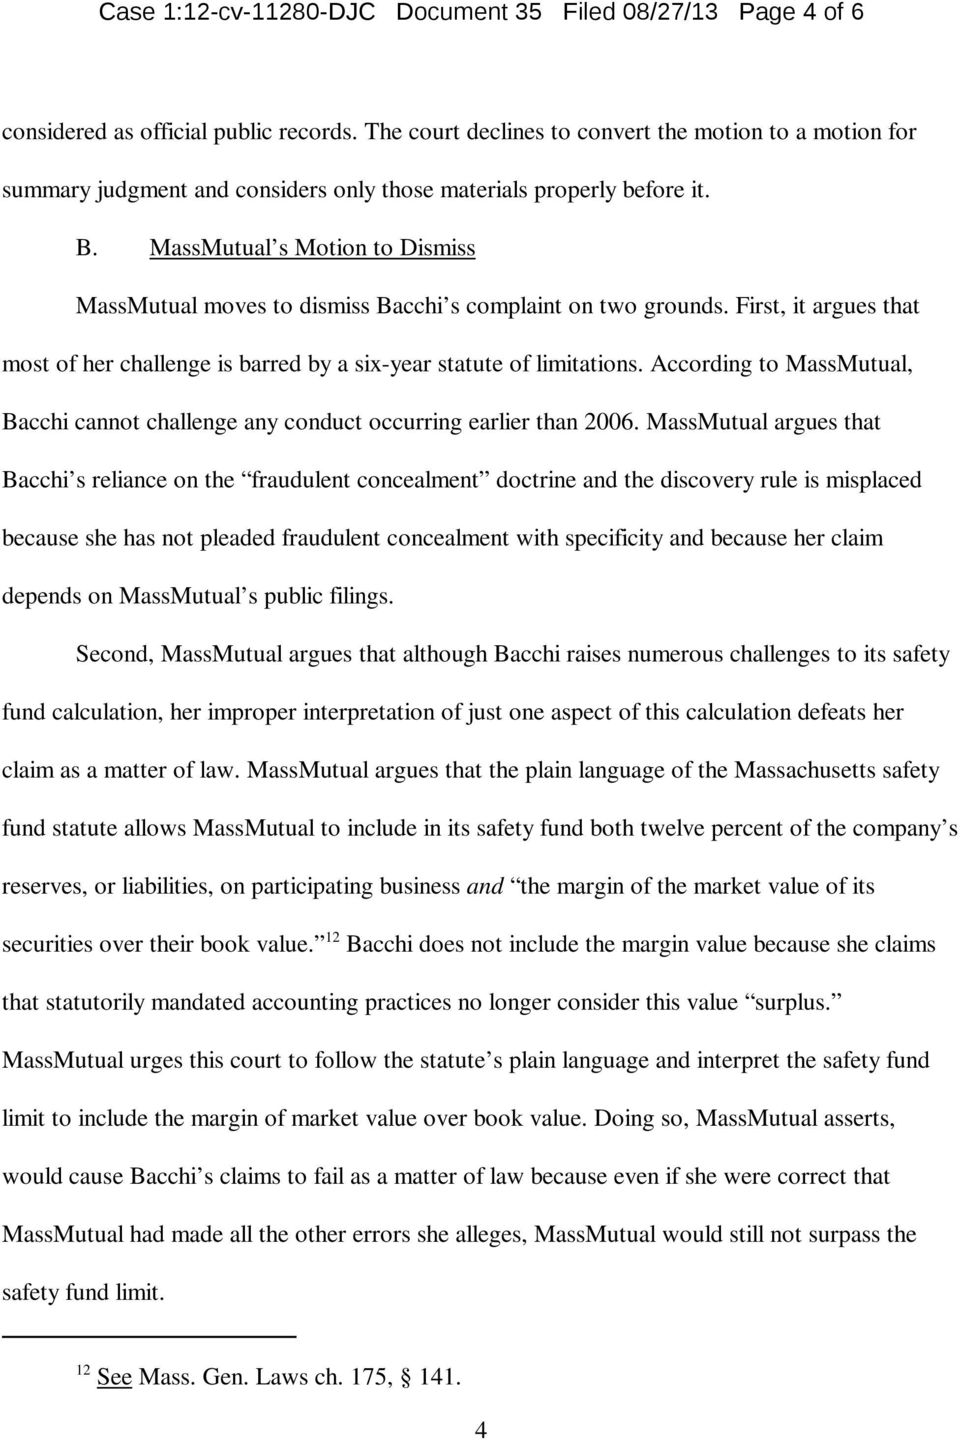 MassMutual s Motion to Dismiss MassMutual moves to dismiss Bacchi s complaint on two grounds. First, it argues that most of her challenge is barred by a six-year statute of limitations.